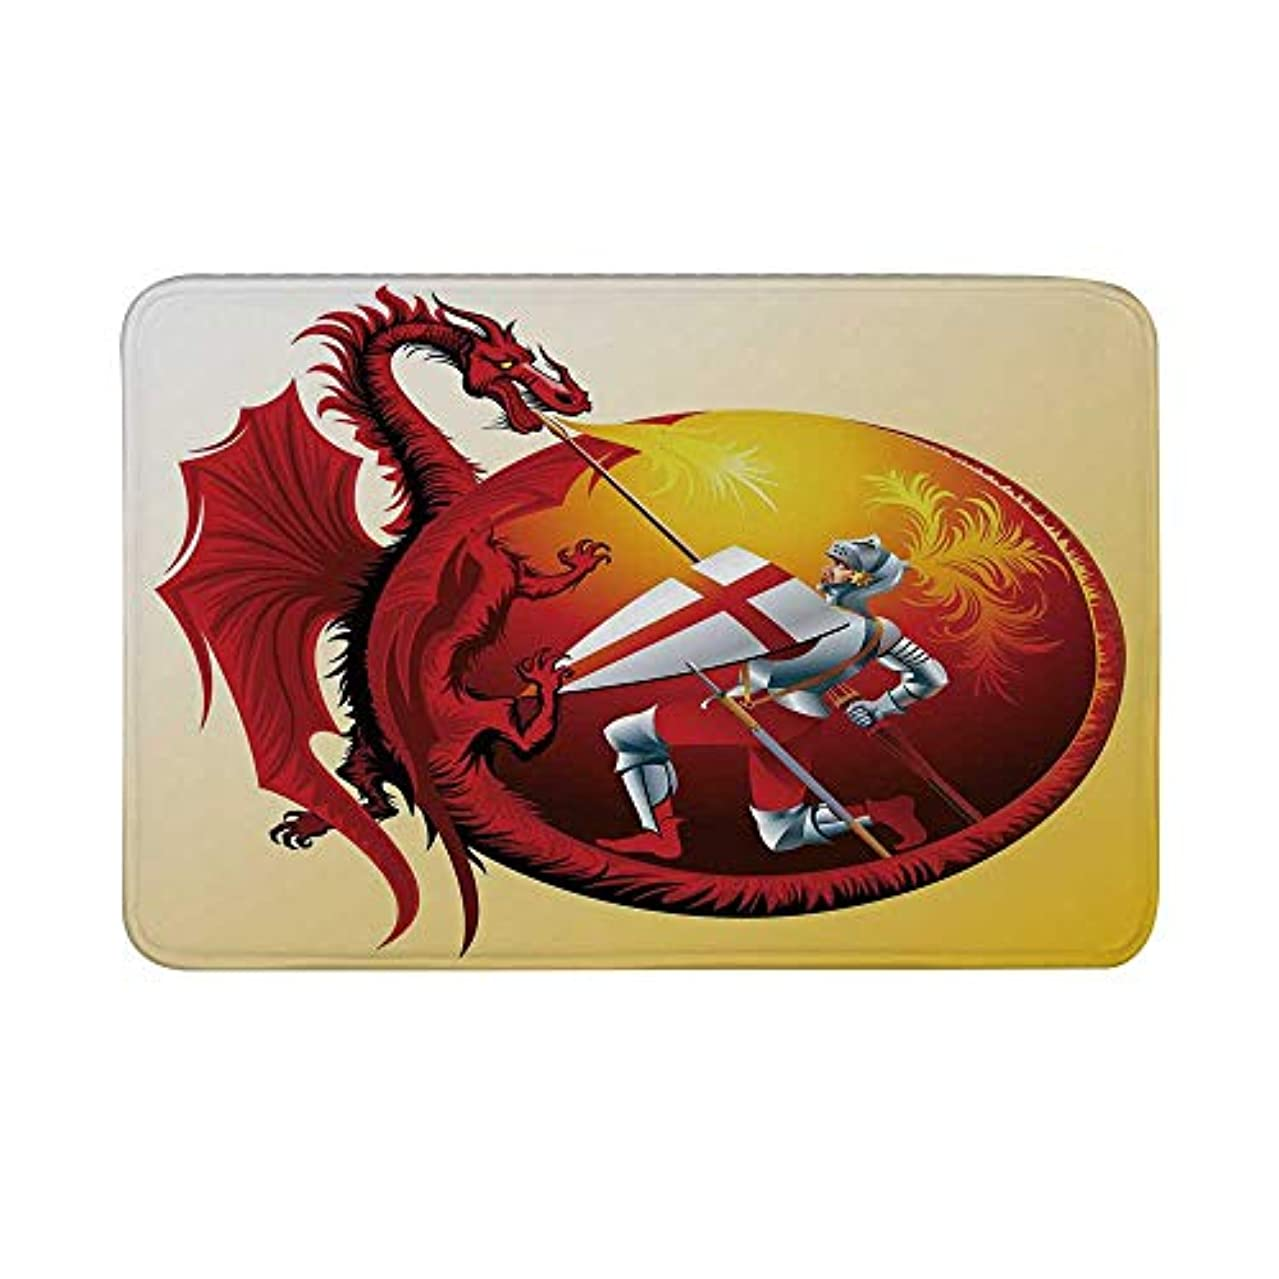 Dragon Non Slip Door Mat,Saint George with Fire Spitting Winged Creature Royal Knight Graphic Decorative Floor Mat for Bathroom Living Room,23